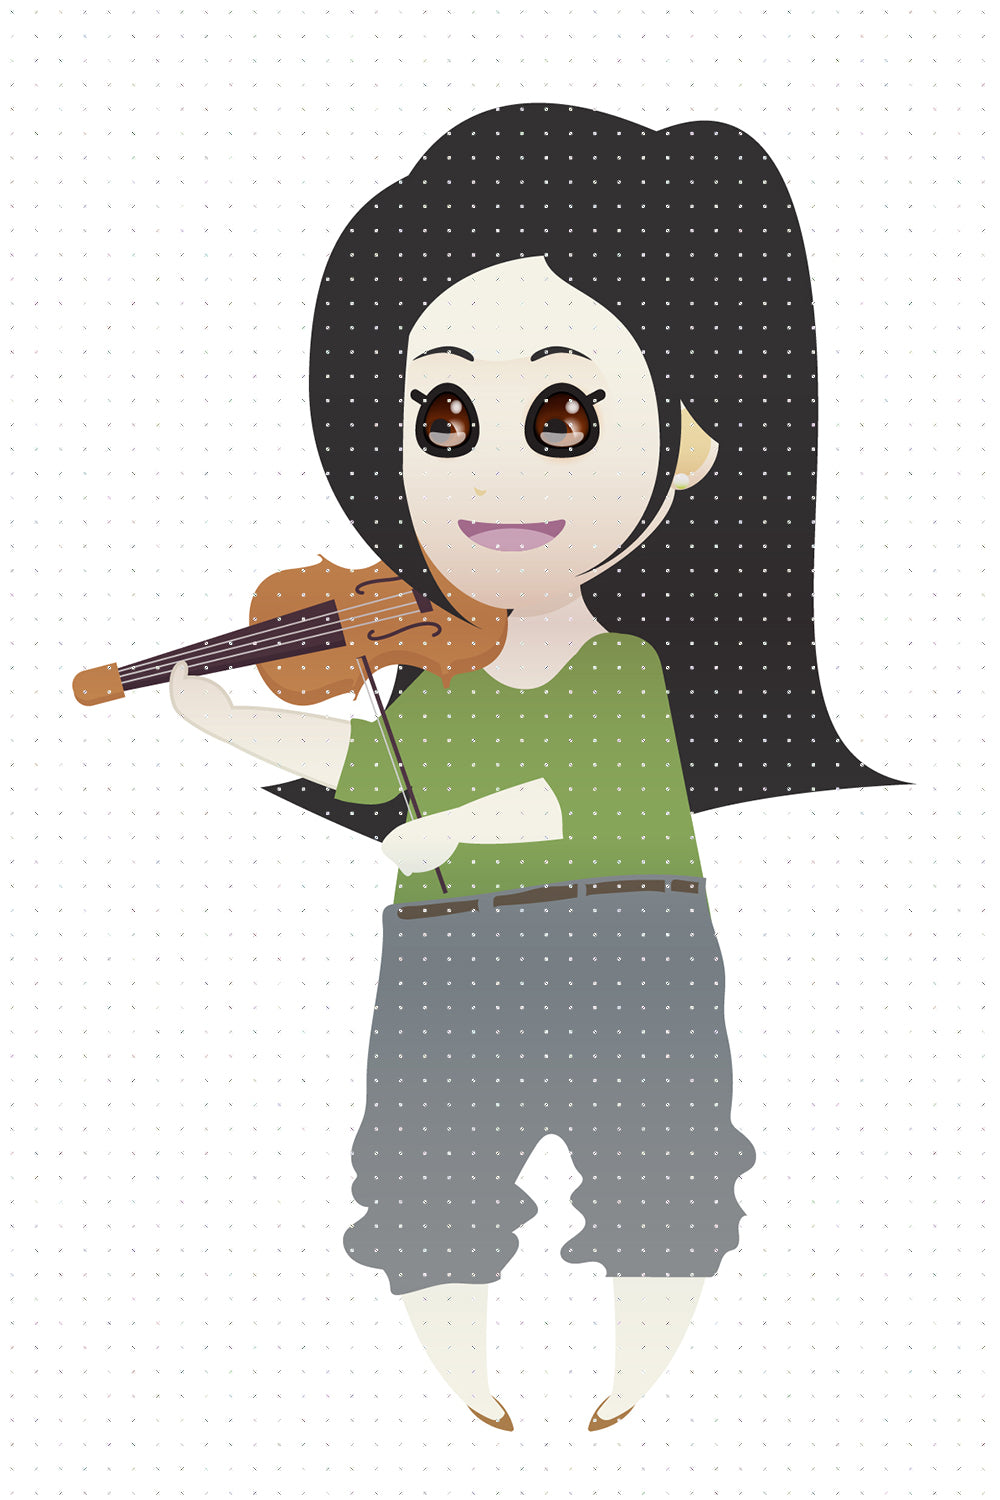 FREE asian girl playing the violin PNG clipart instant download for Personal Use